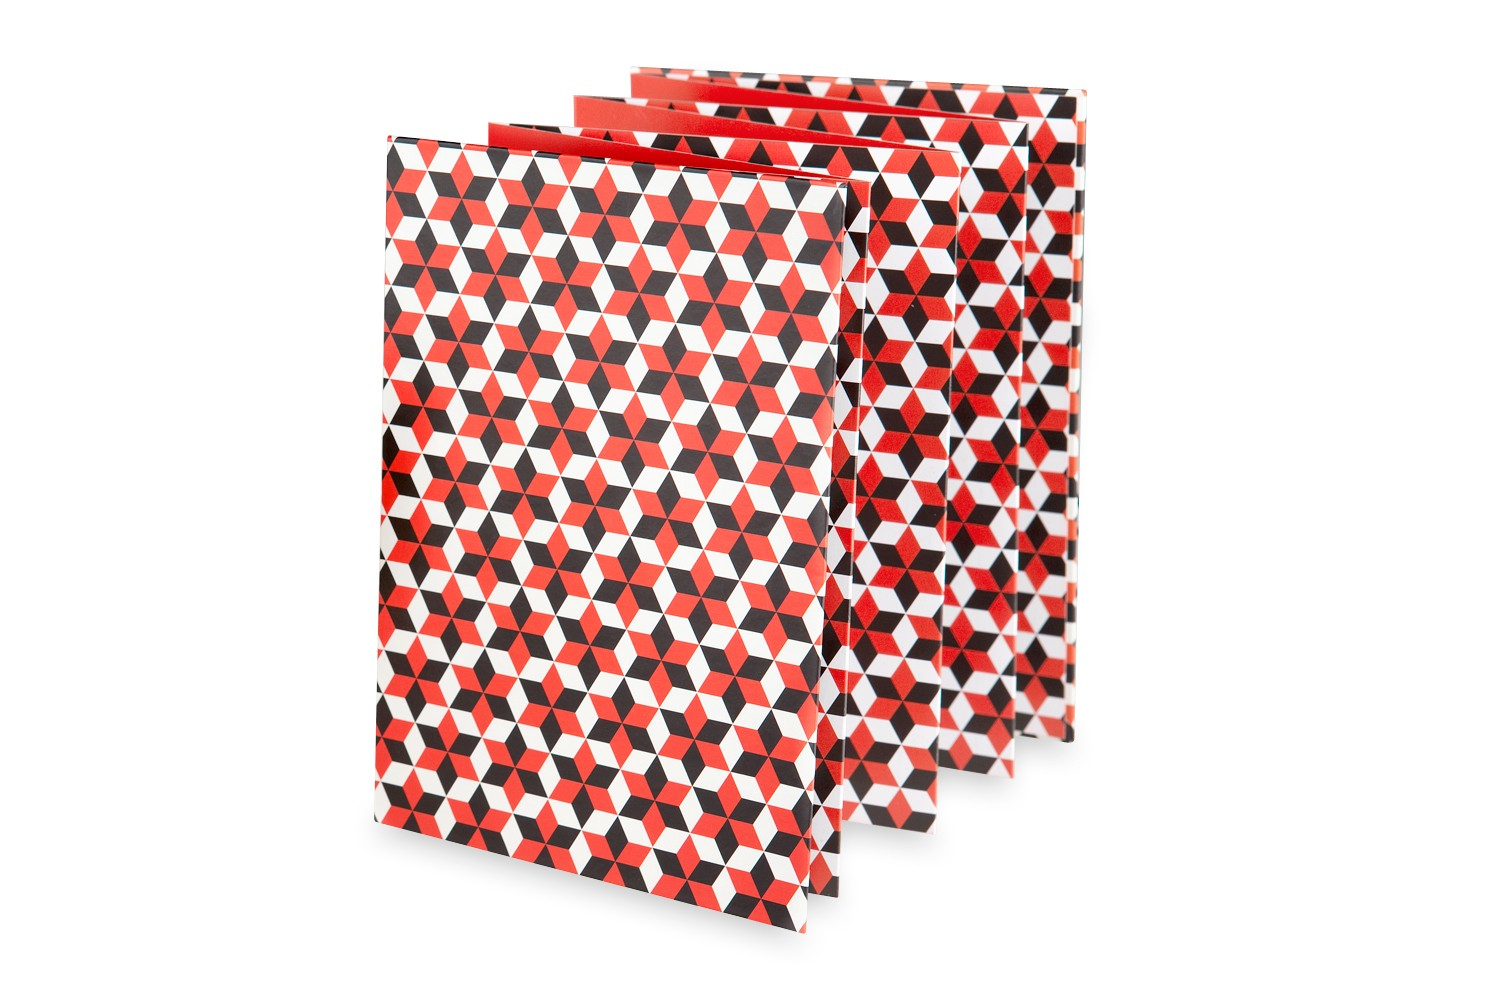 Photo Accordion Pattern Edition - Cubic